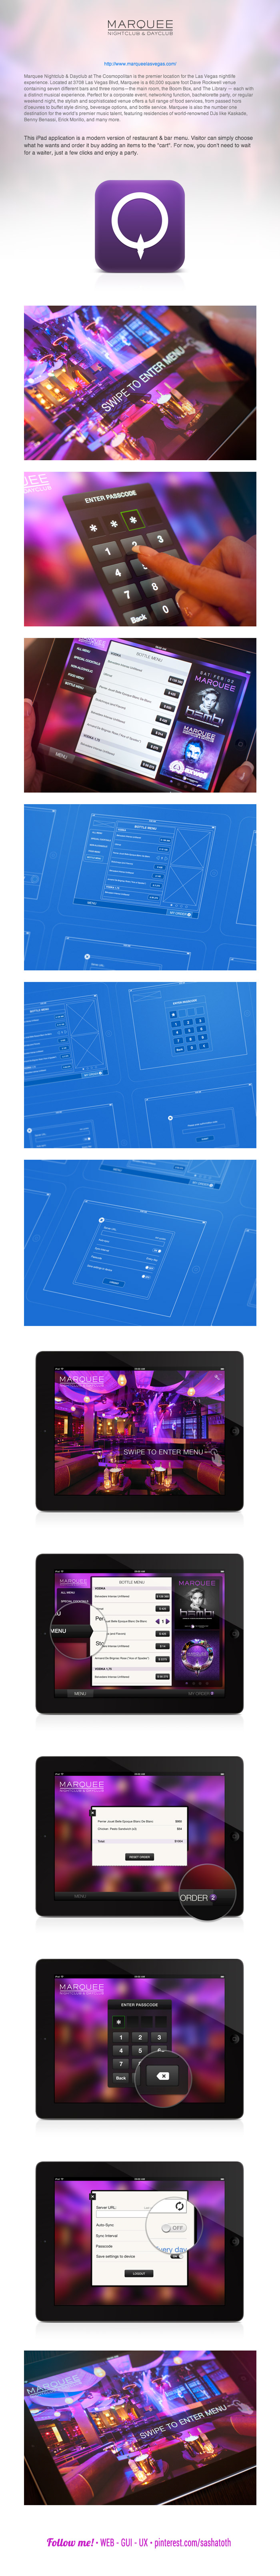 Marquee Restaurant & Bar Menu for an iPad by Valik Boyev, via Behance *** #app #ios #gui #ui #behance